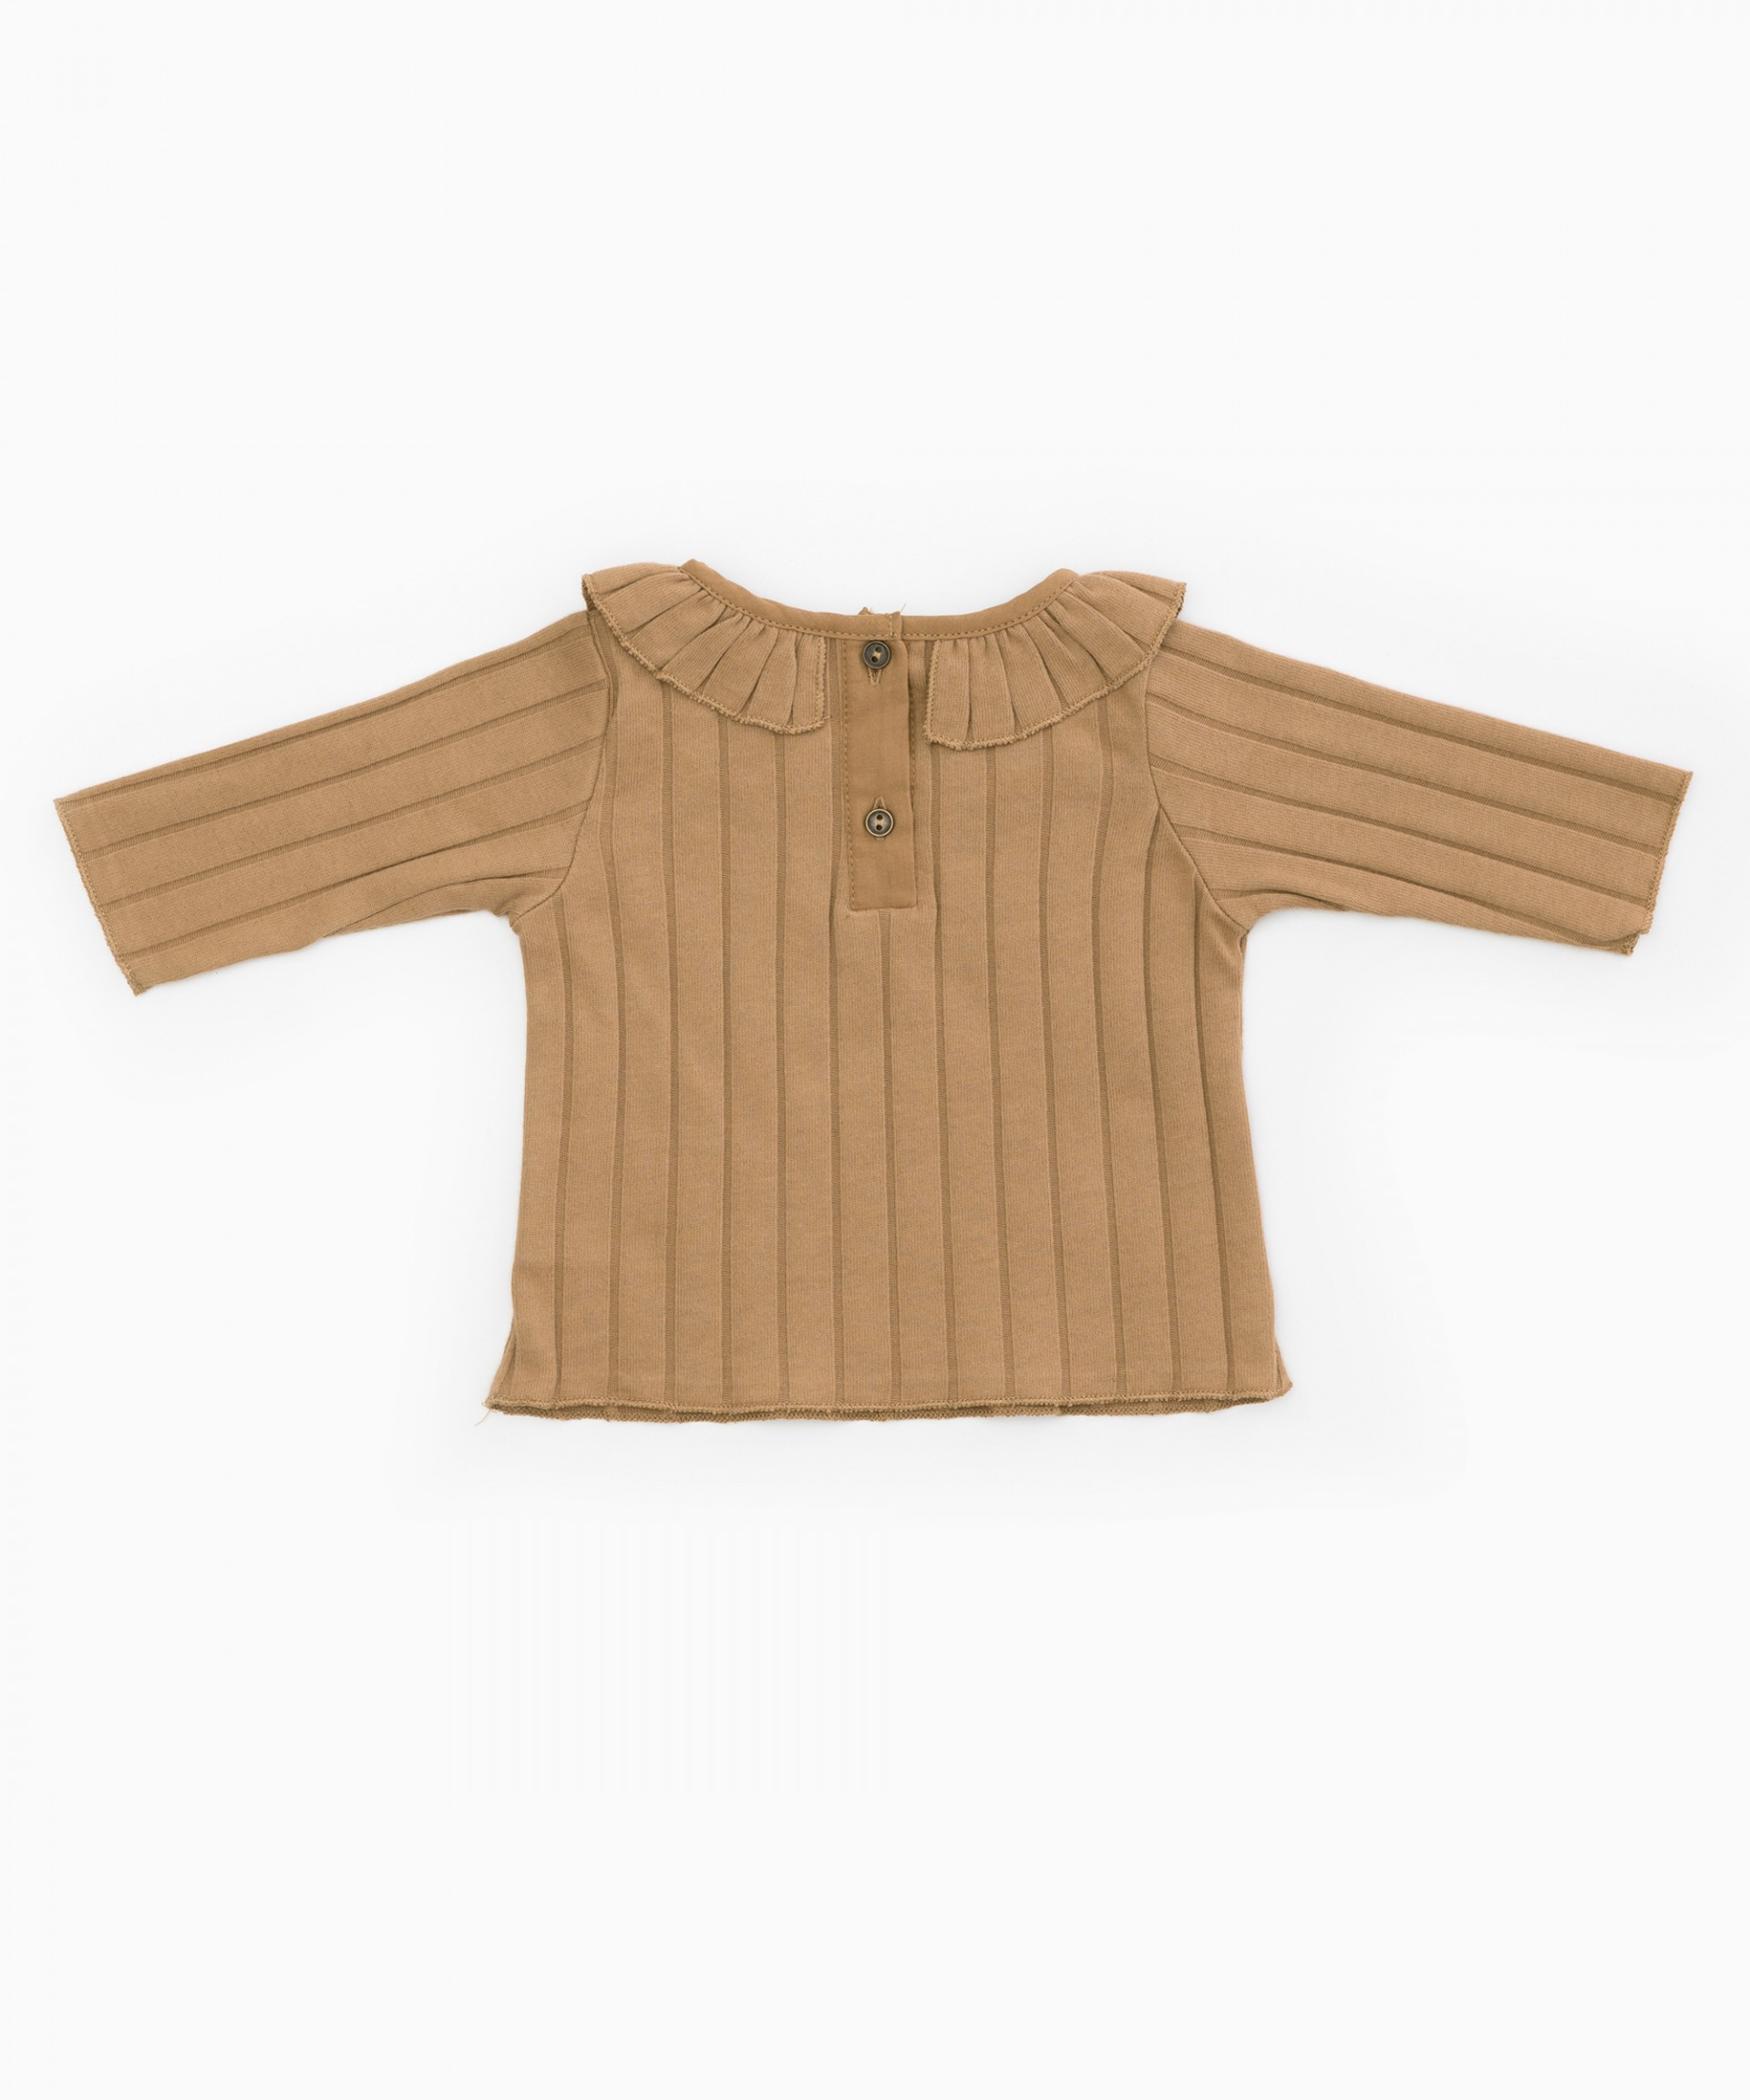 T-shirt in organic cotton with frill | Woodwork